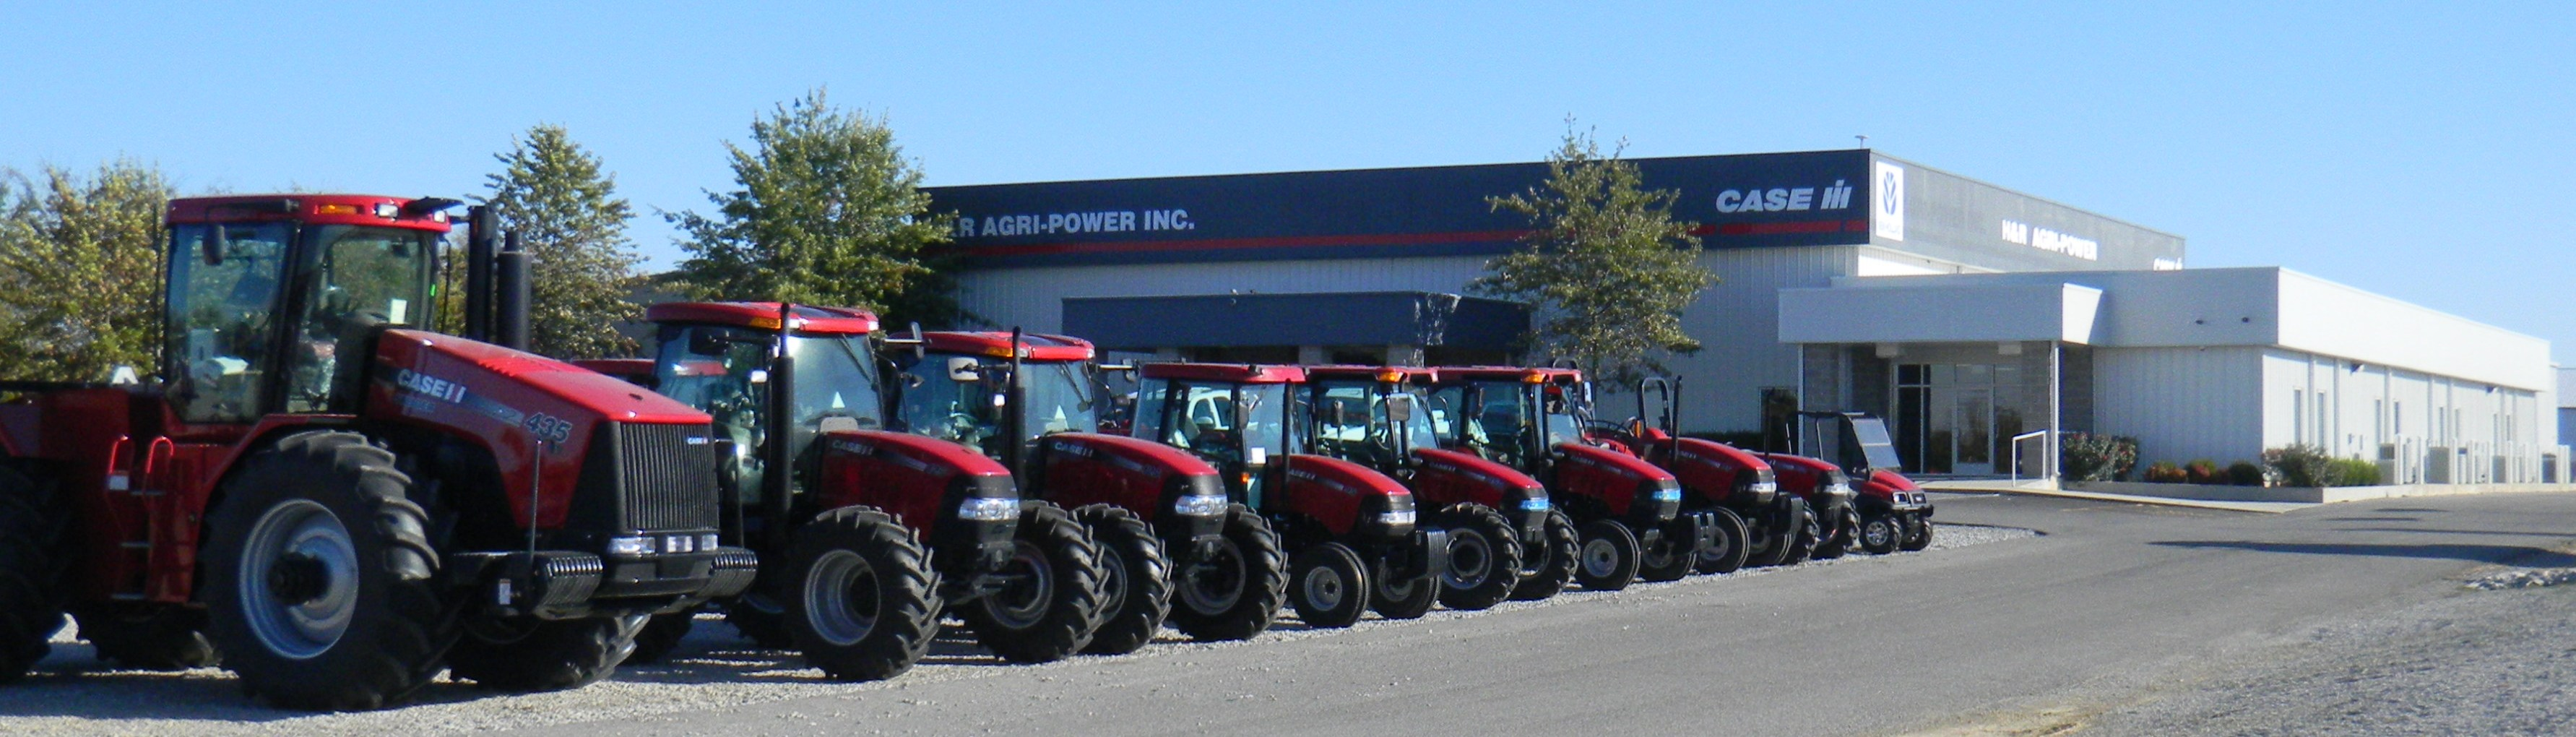 H & R Agri-Power